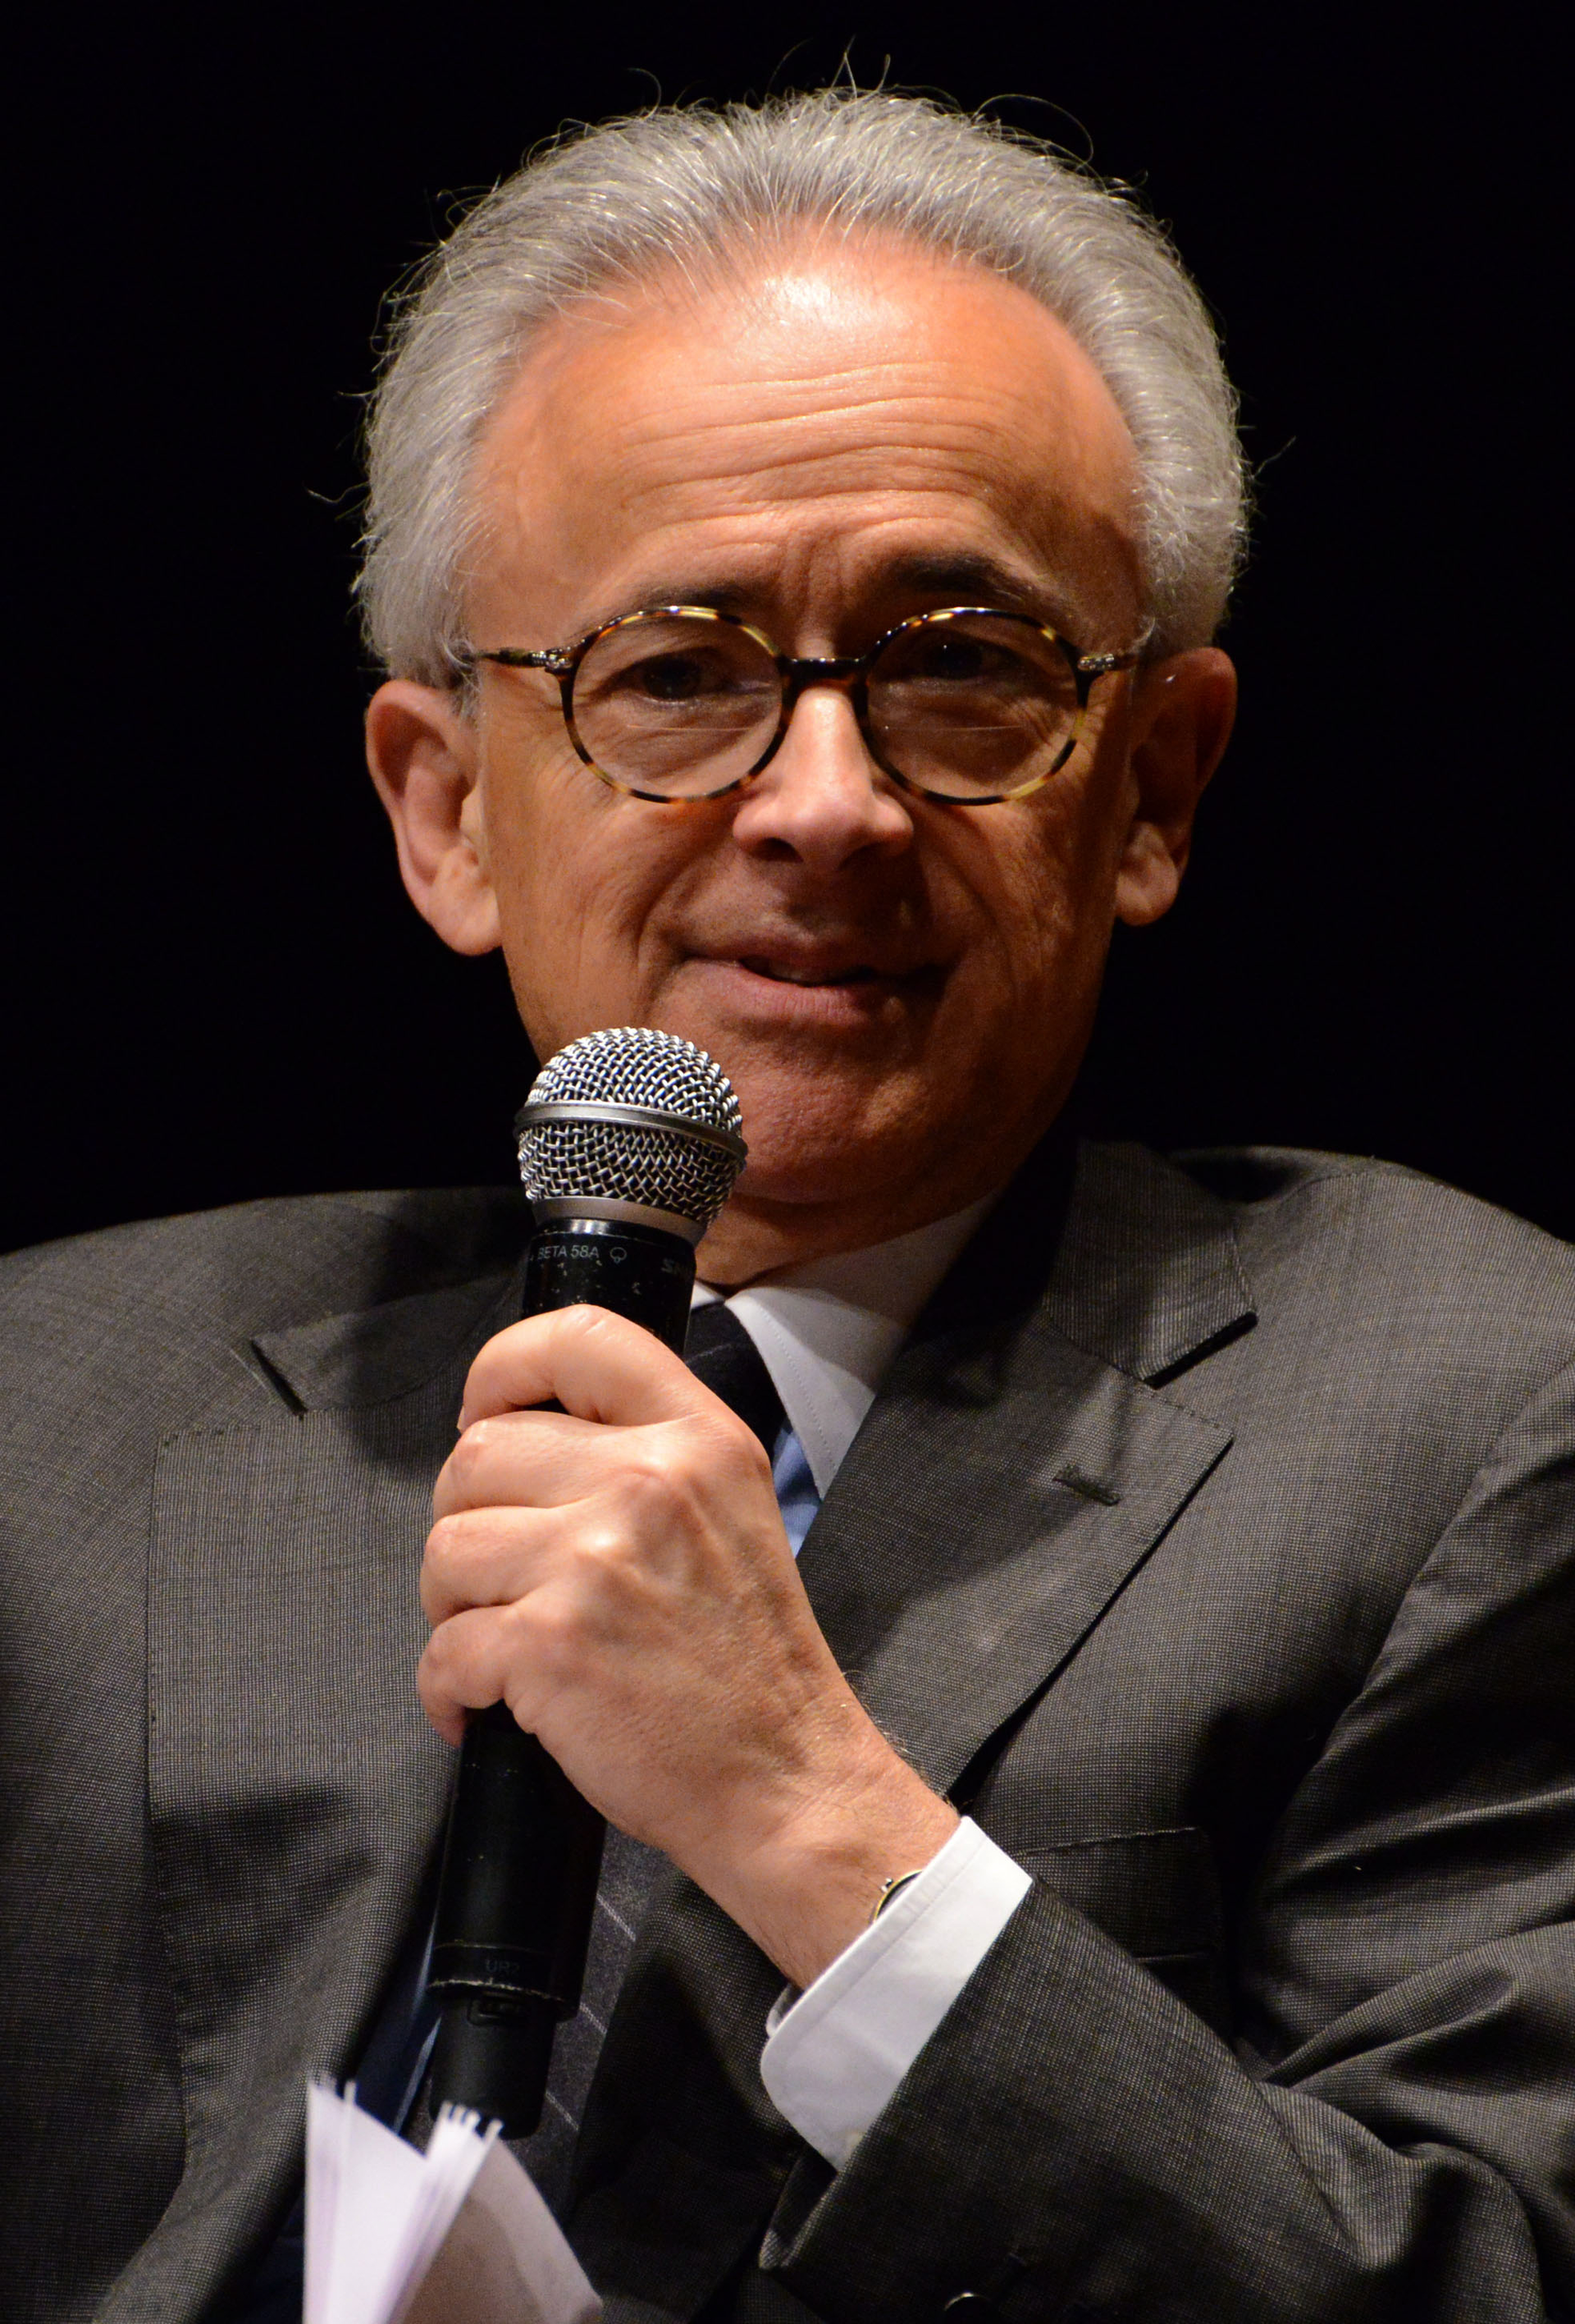 Antonio Damasio Wikipedia